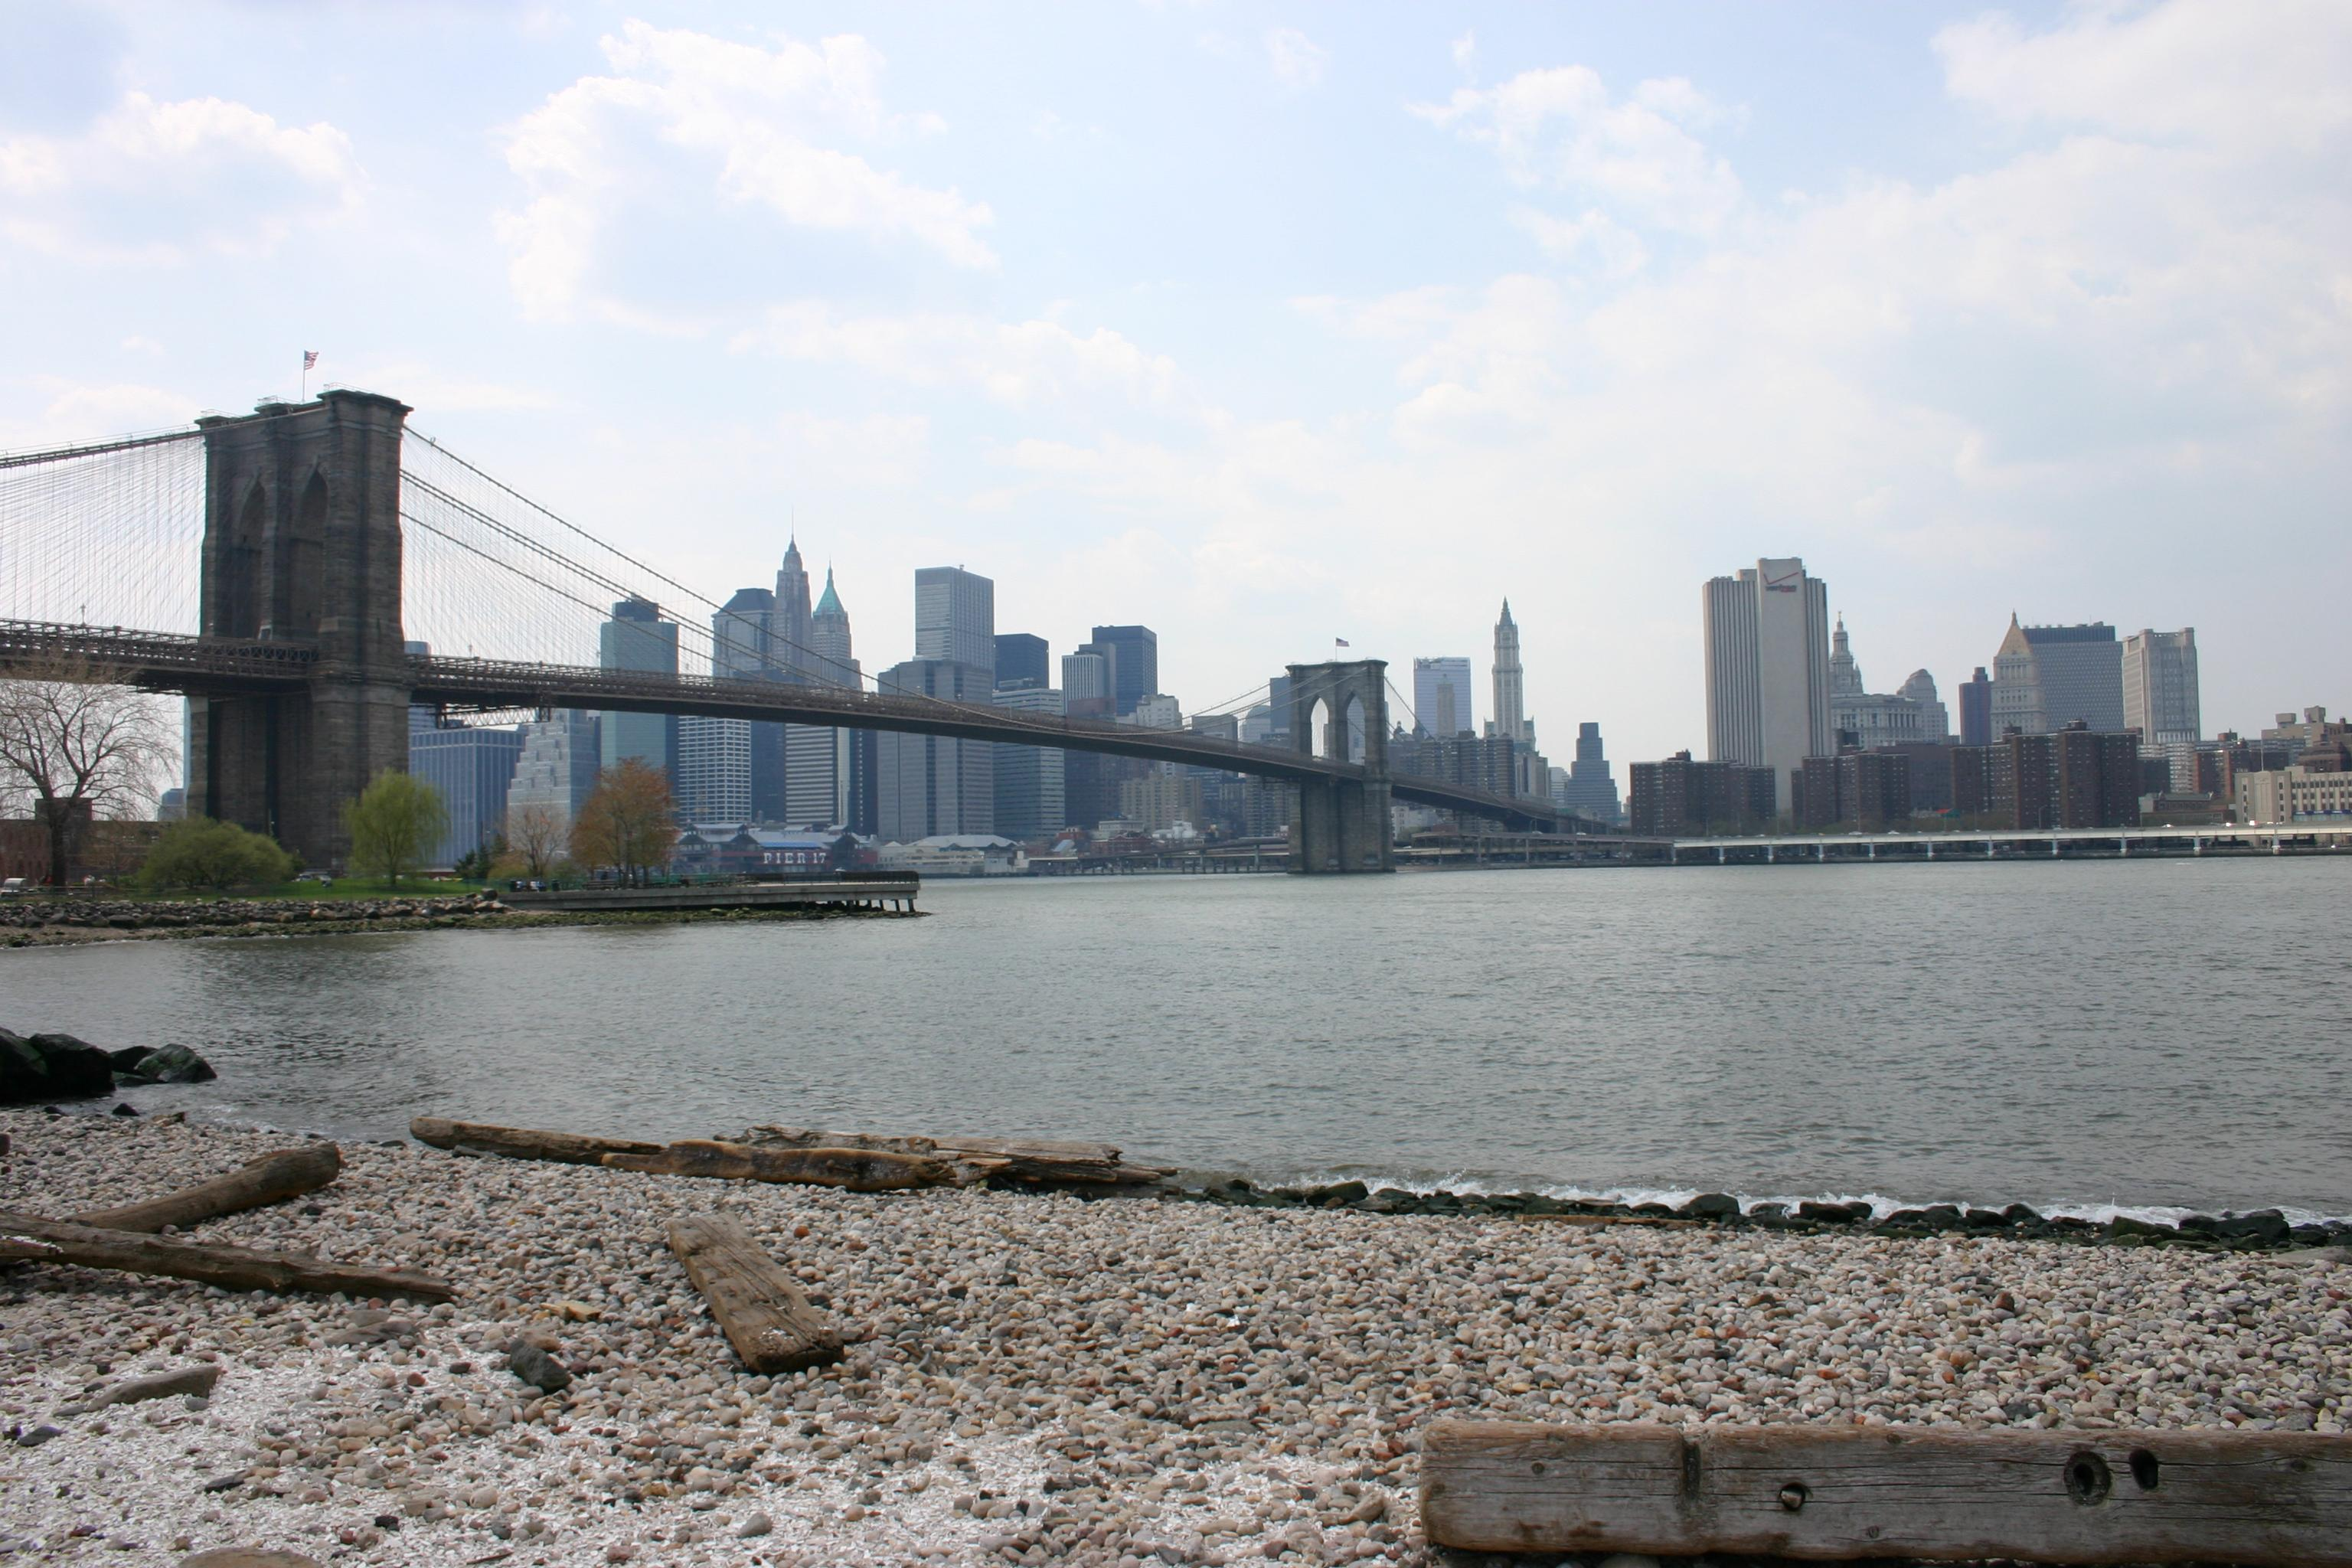 Walk across Brooklyn Bridge, turn left and admire the view of Manhattan across the river.